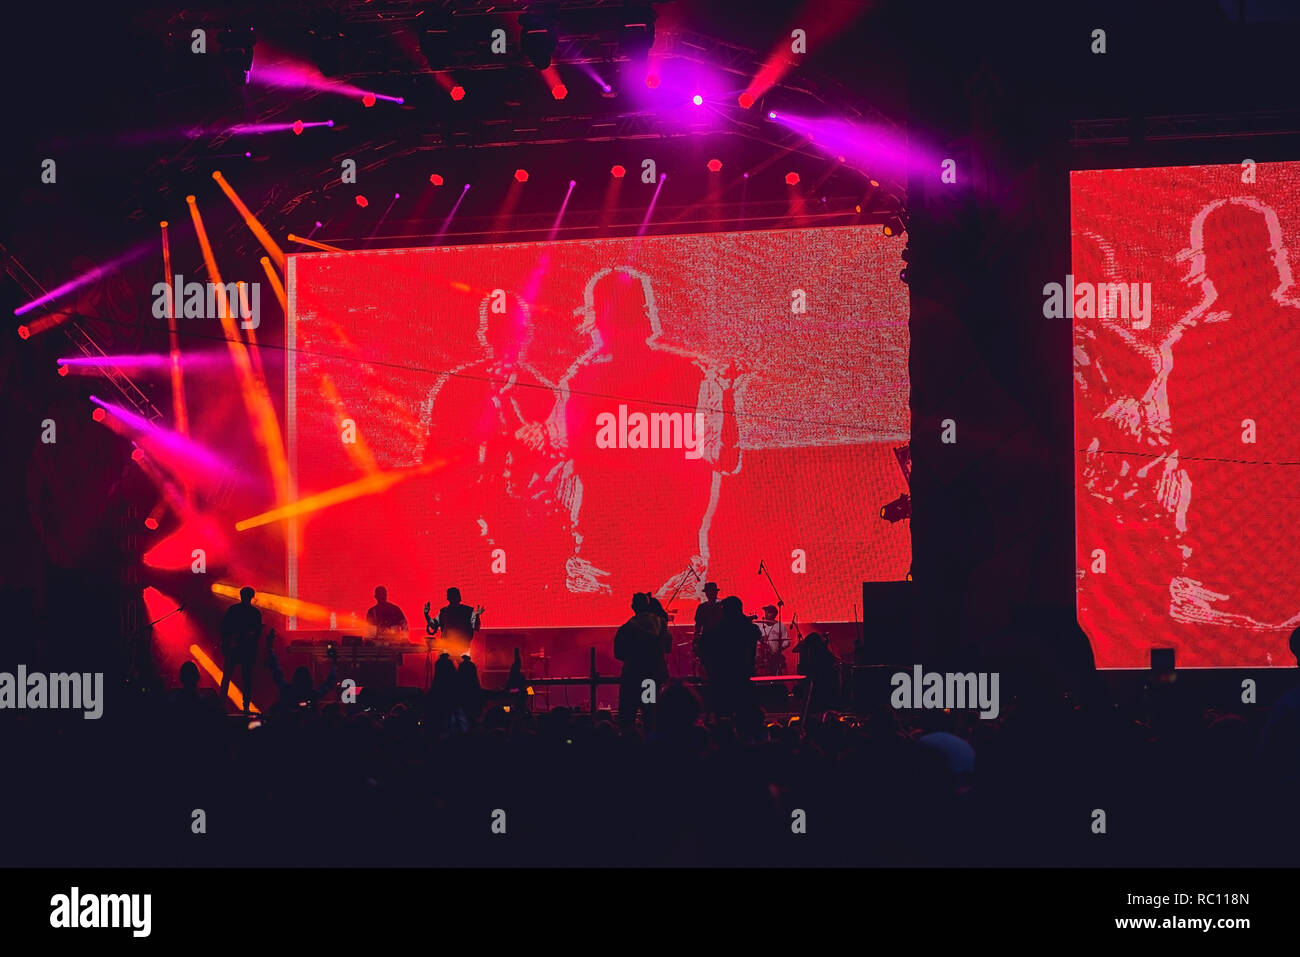 Silhouette of a big crowd at concert against a brightly lit stage. Night time rock concert with people having fun lifting hands up in the air and chee - Stock Image